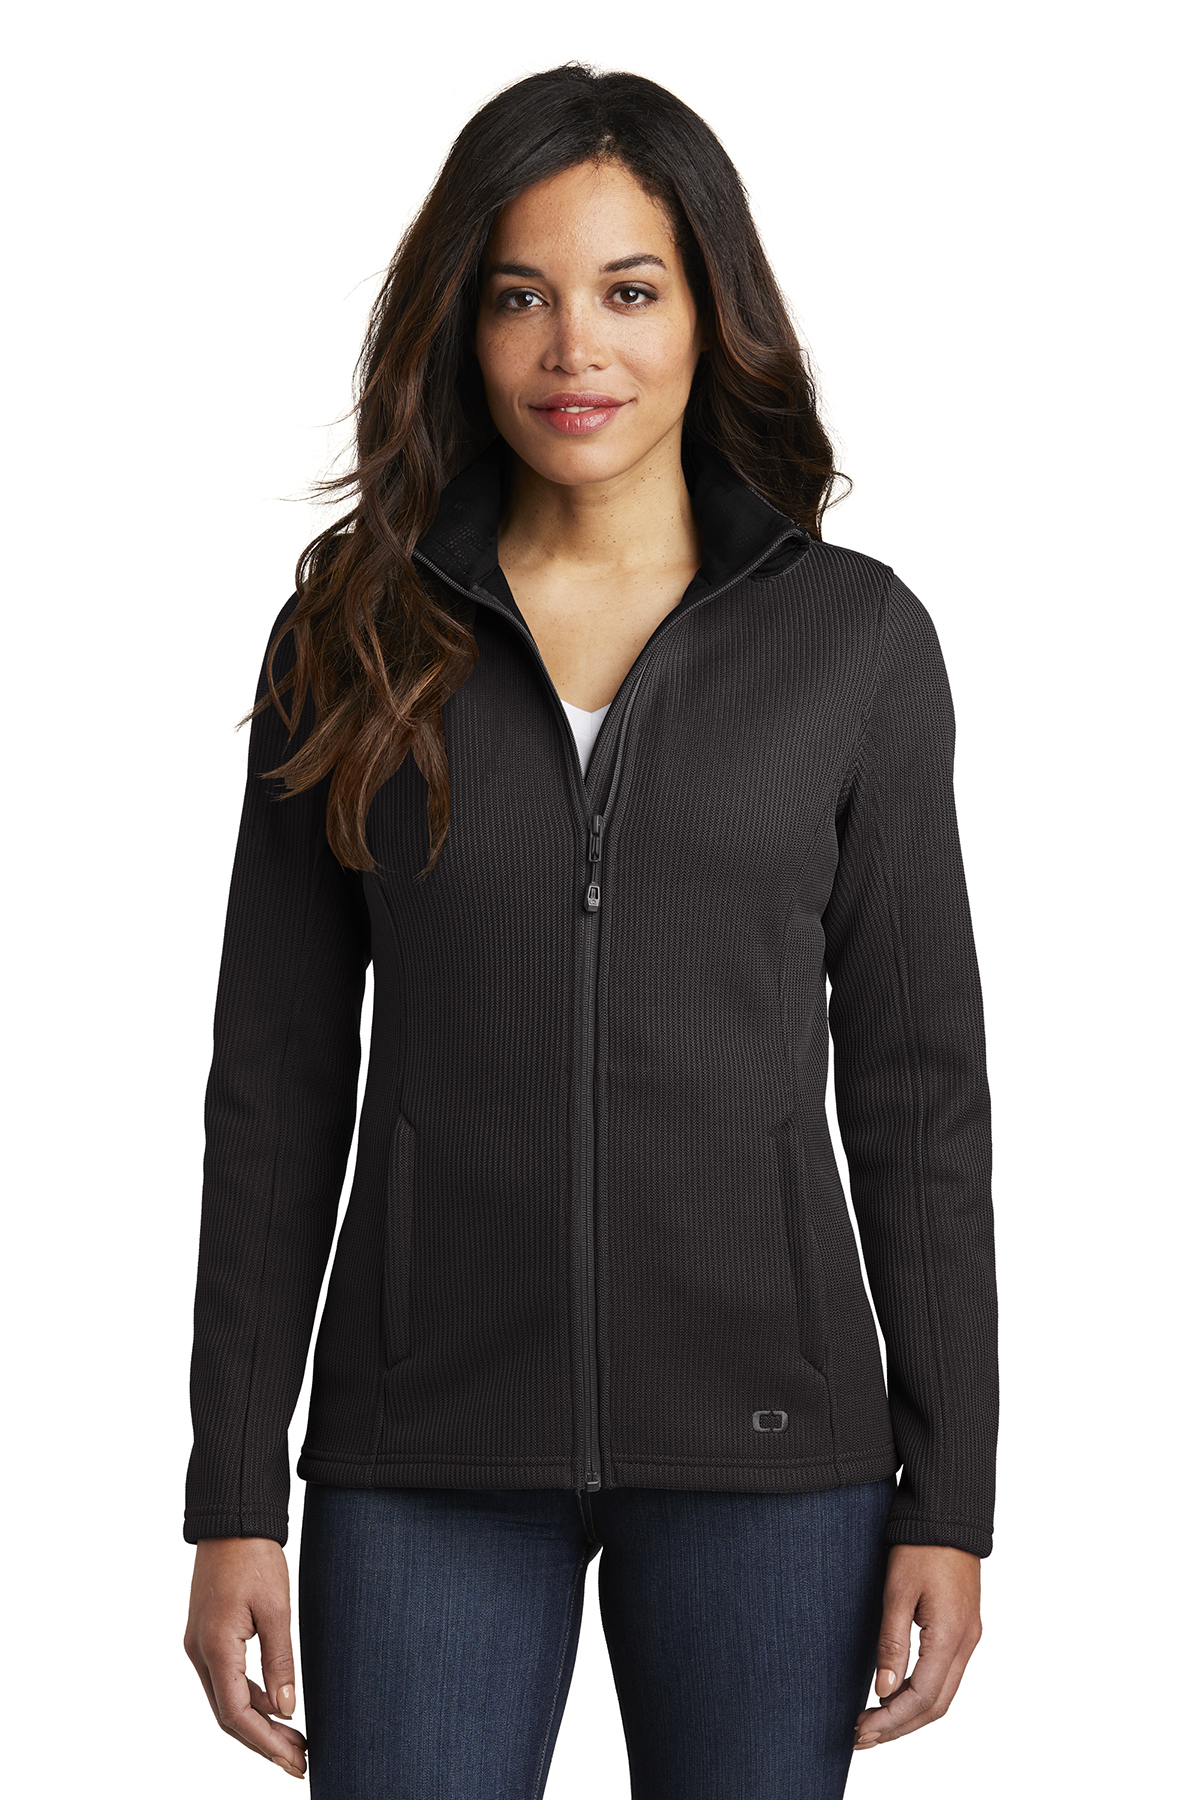 OGIO LOG727 - Ladies Grit Fleece Jacket